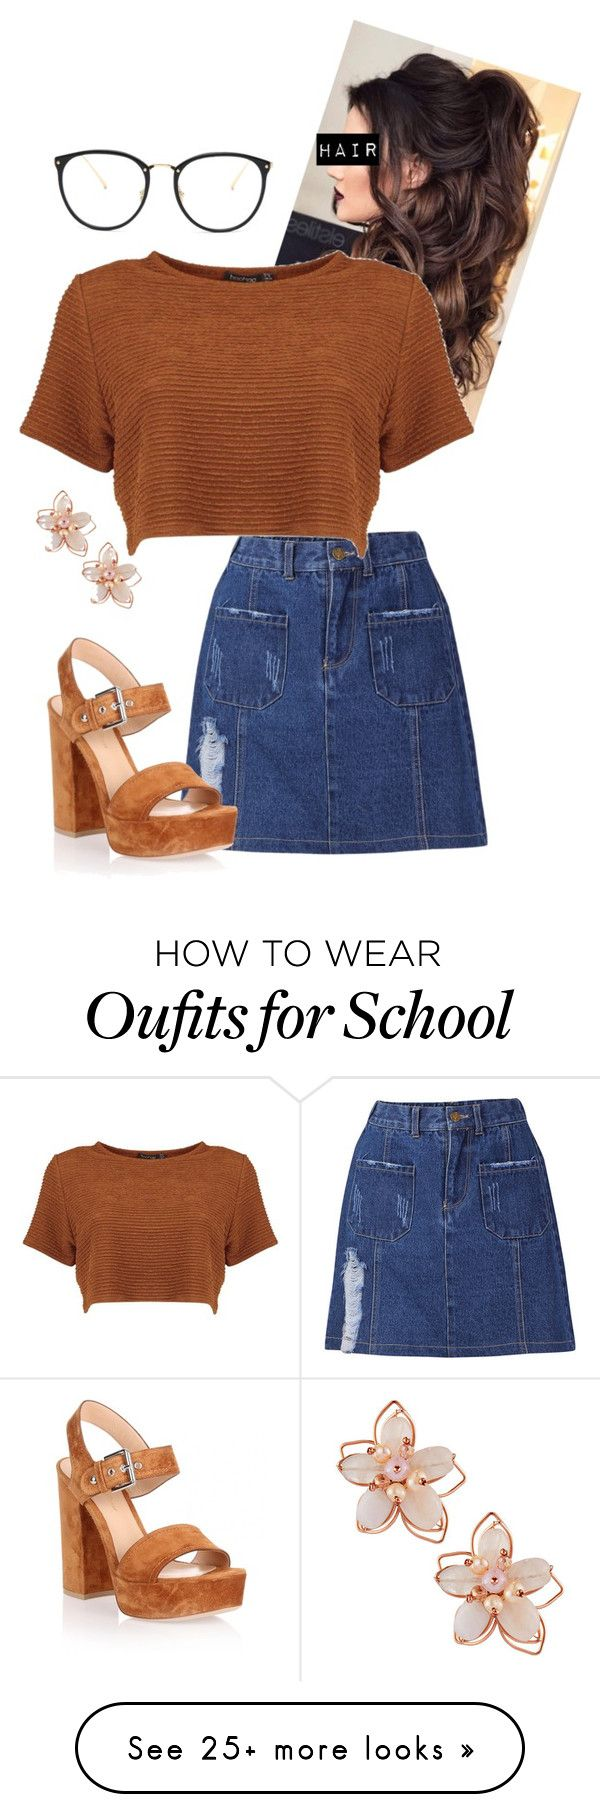 """#OOTD"" by elleries on Polyvore featuring Linda Farrow, Gianvito Rossi and NAKAMOL"